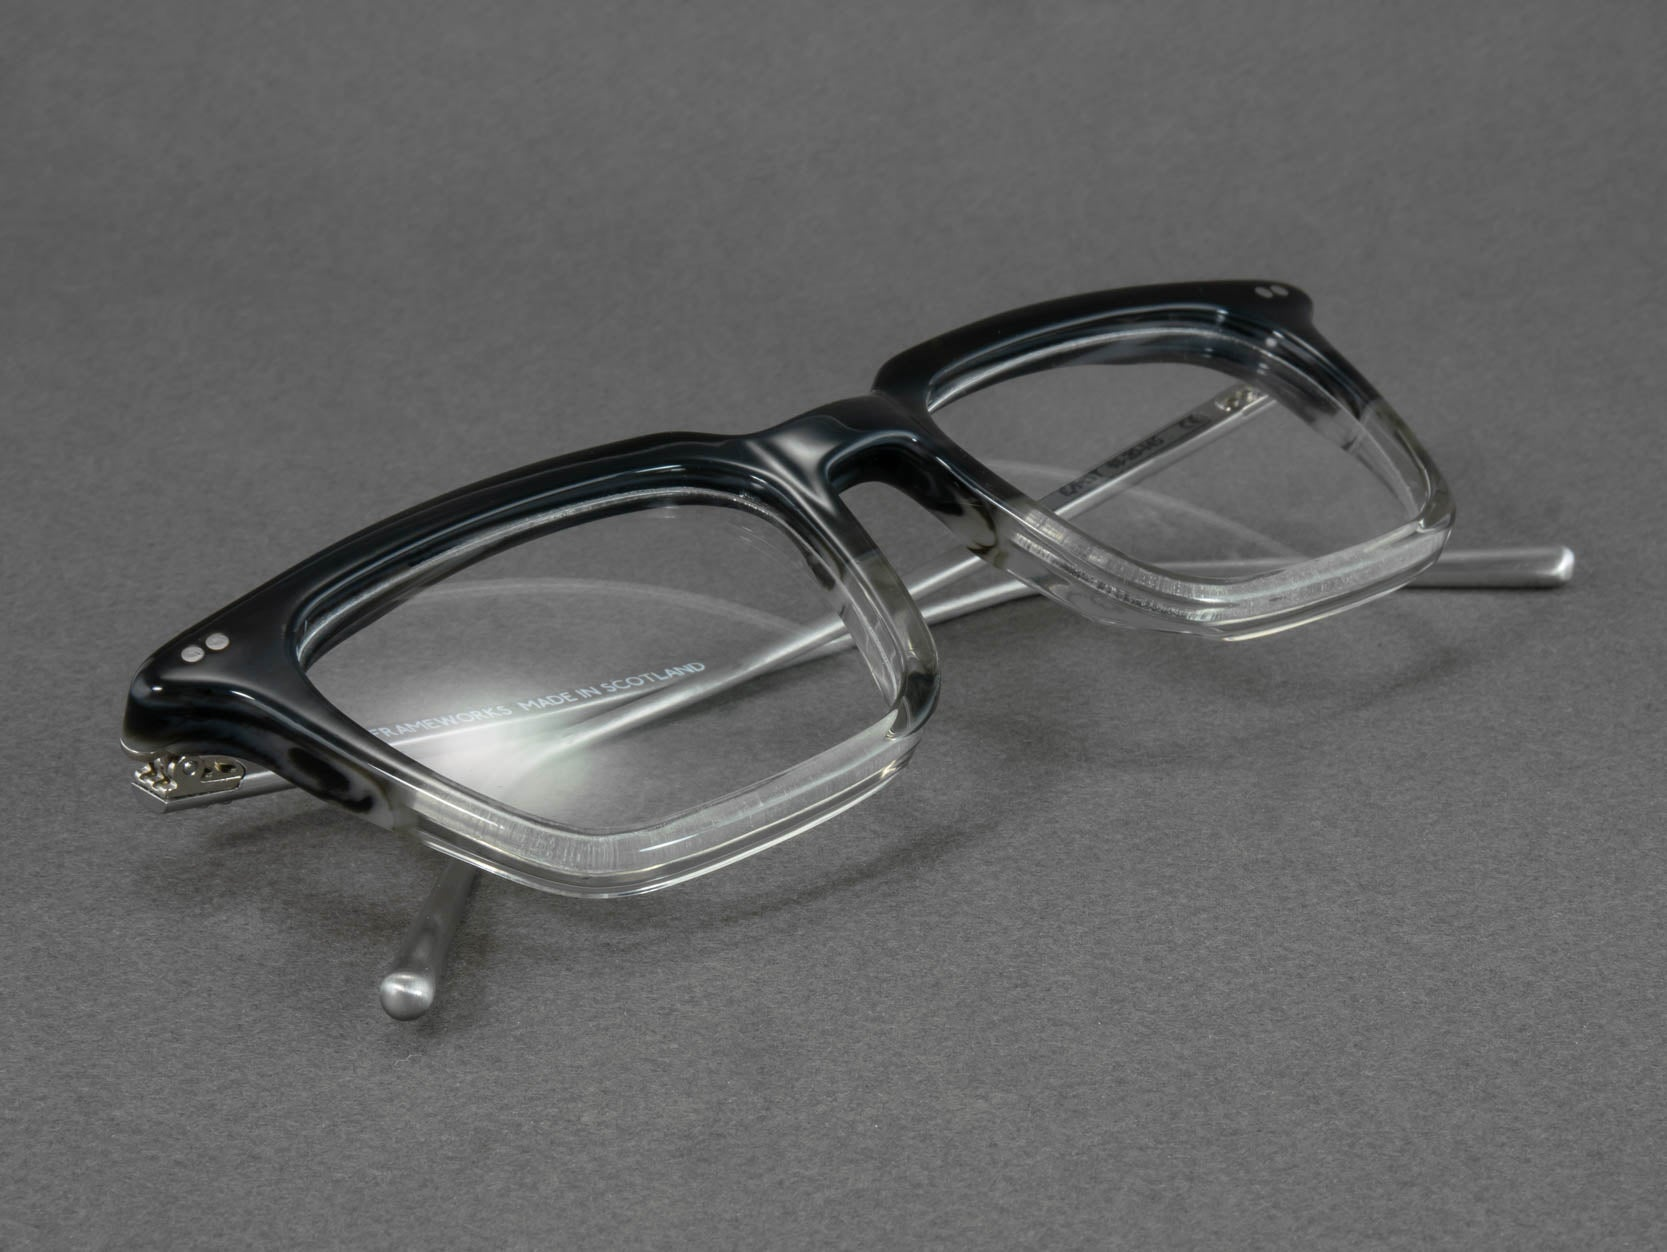 Optical glasses frame e mst close up